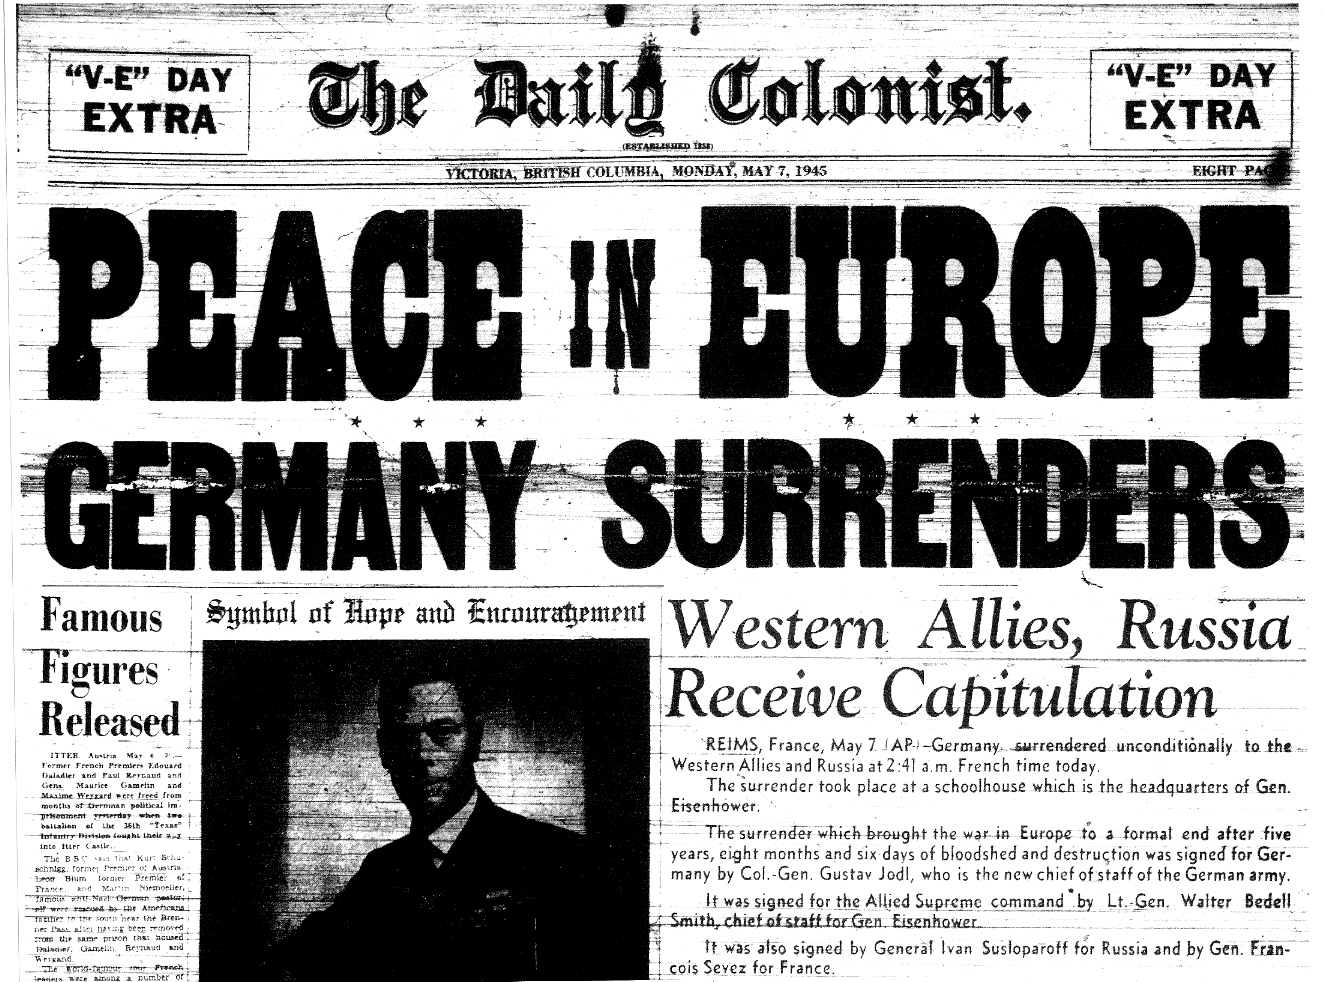 Front page of The Daily Colonist, May 7 1945, Extra edition